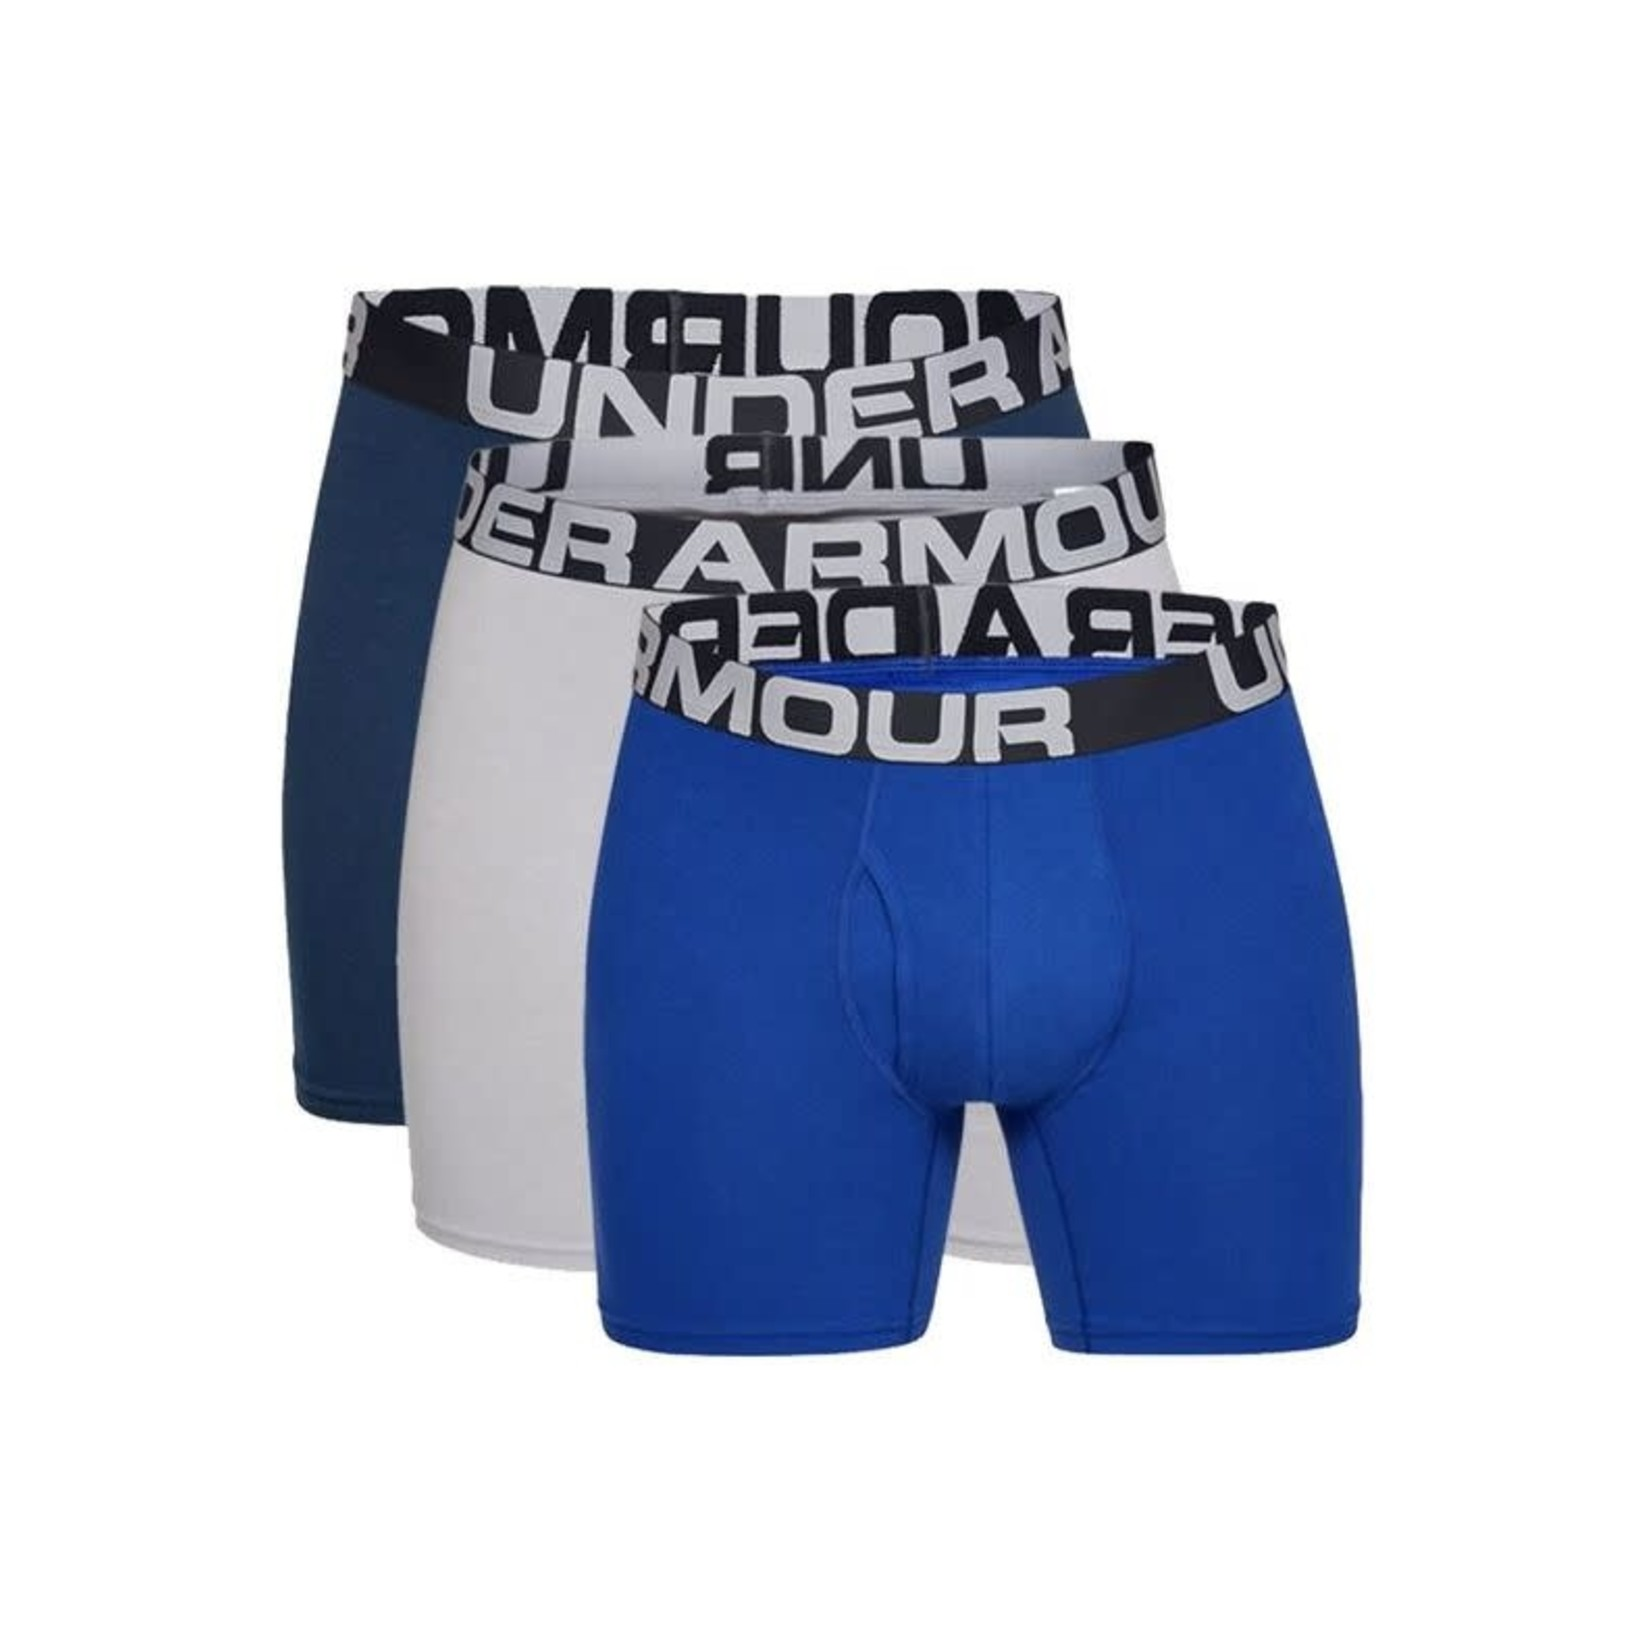 """Under Armour Under Armour Underwear, Charged Cotton 6"""", 3-Pack, Mens"""